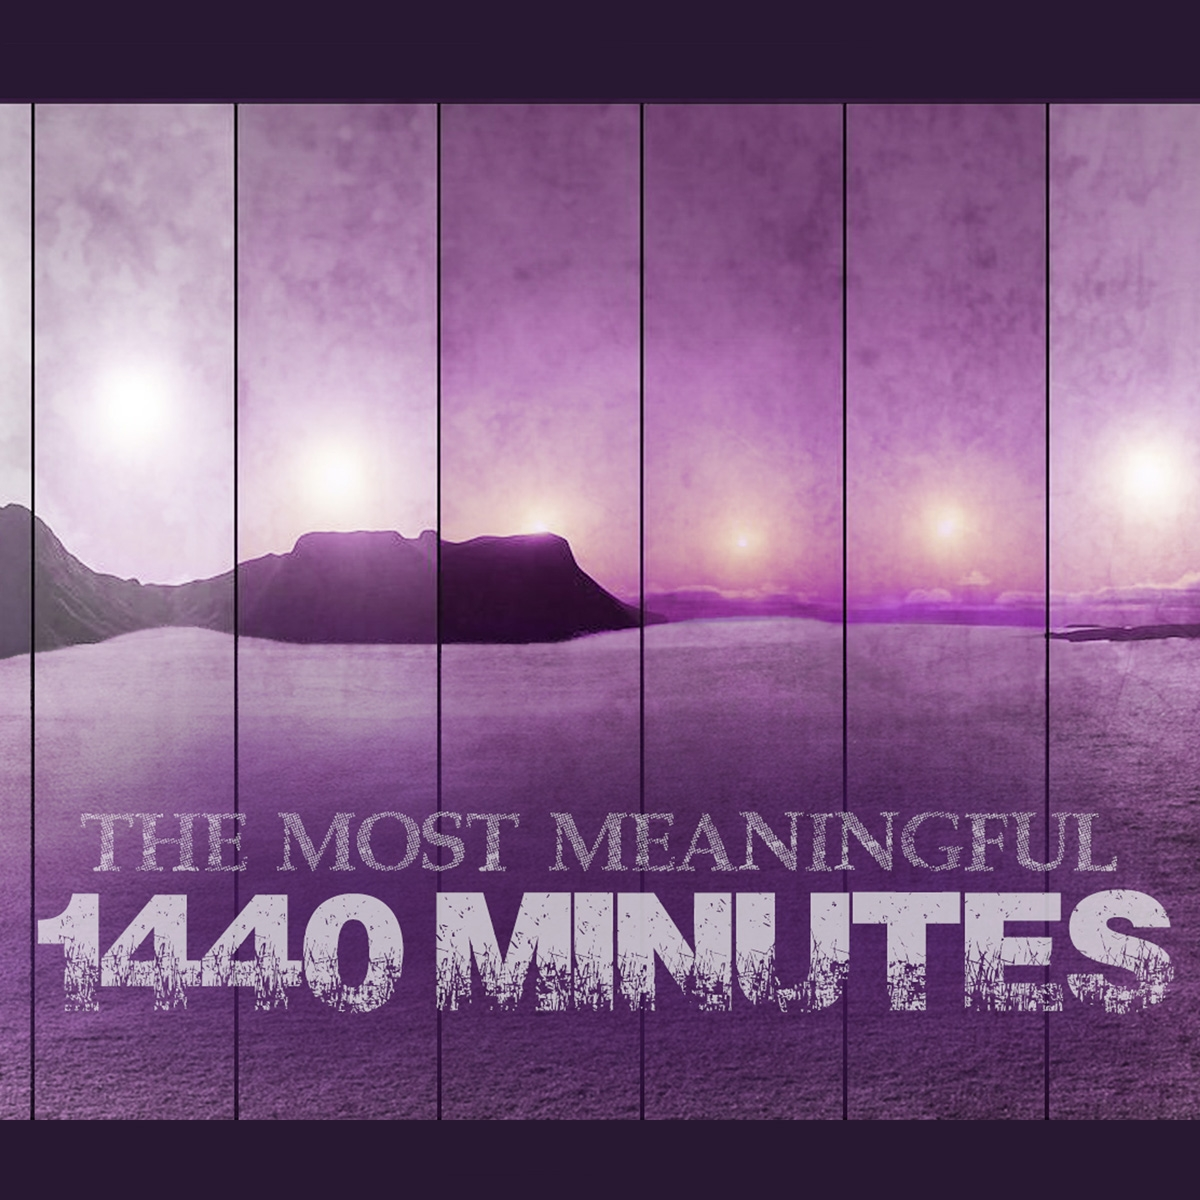 The Most Meaningful 1440 Minutes